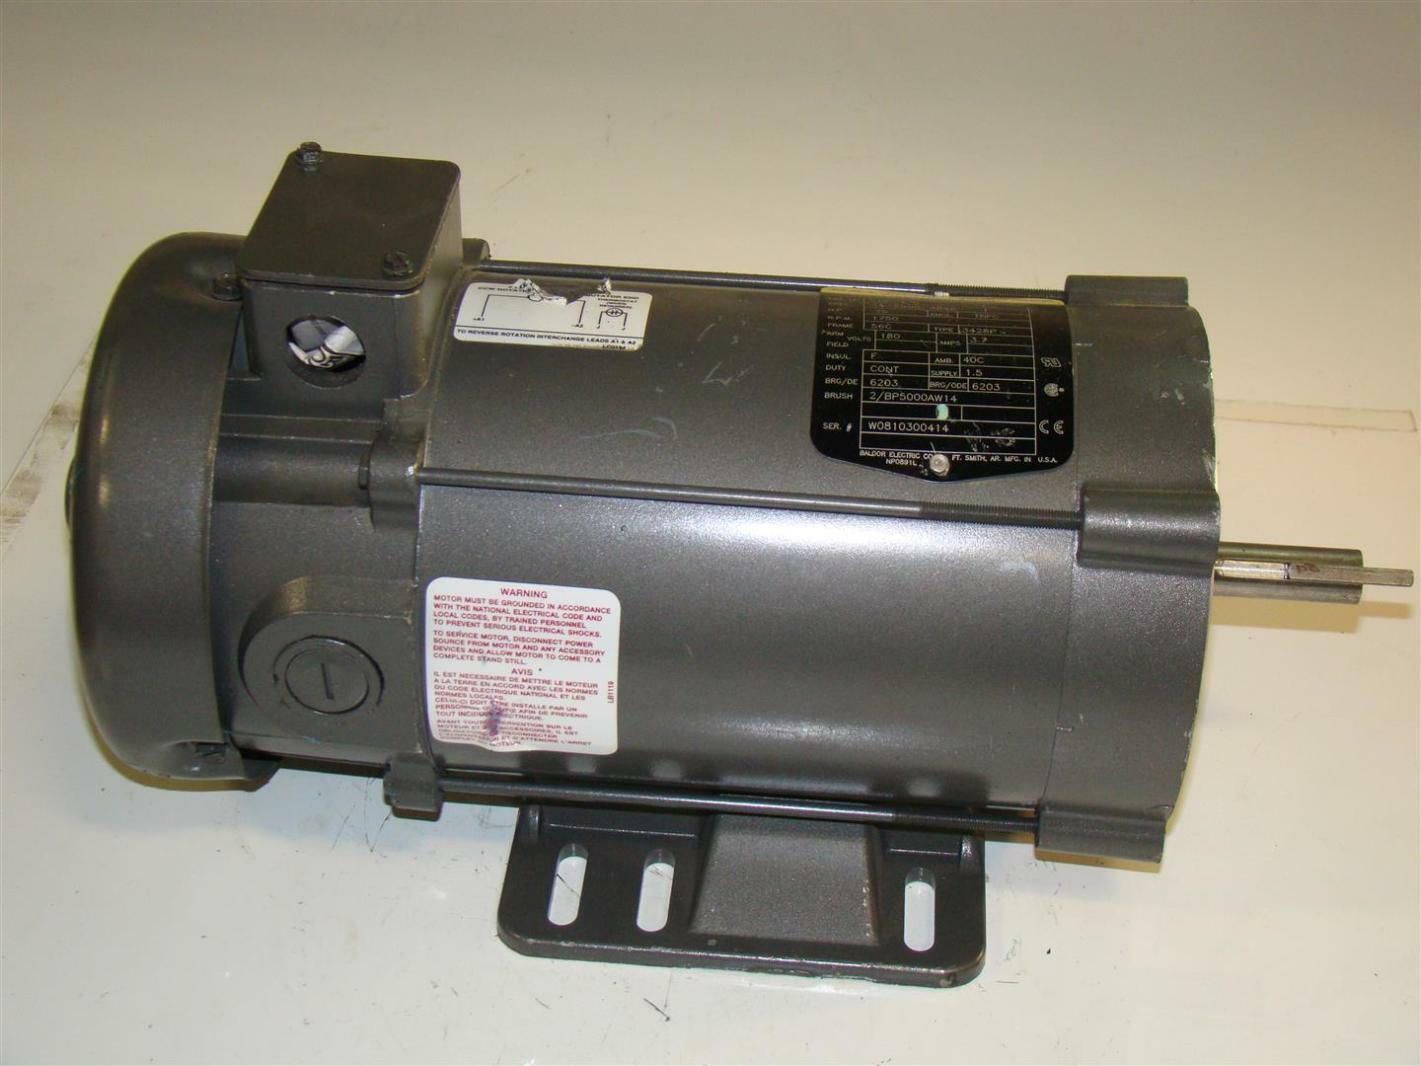 Baldor reliancer dc electric motor 75hp 1750rpm 180v cdp3436 for Baldor electric motor parts